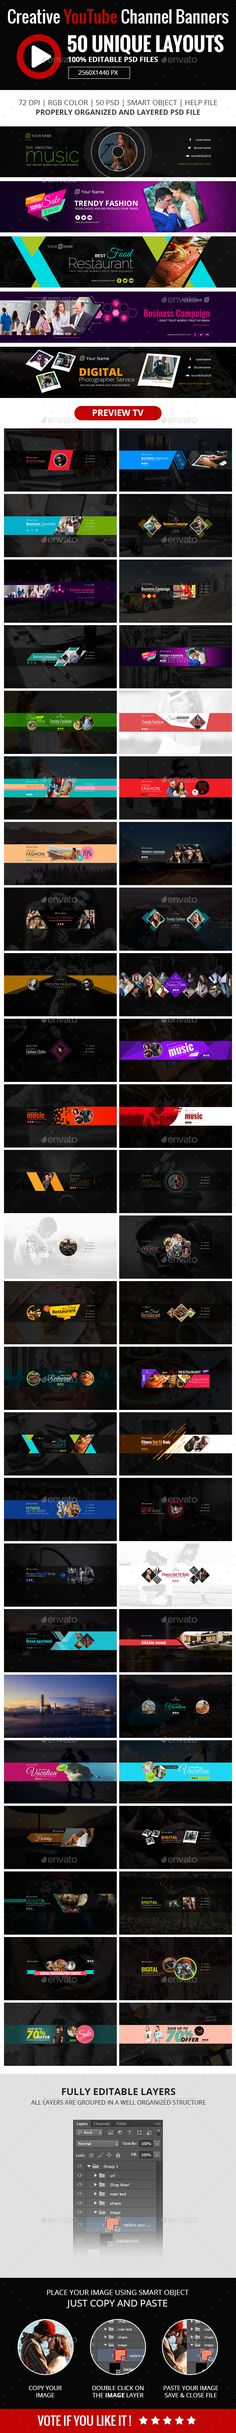 50 Multipurpose YouTube Channel Art - #YouTube #Social Media Download here: https://graphicriver.net/item/50-multipurpose-youtube-channel-art/19491497?ref=alena994